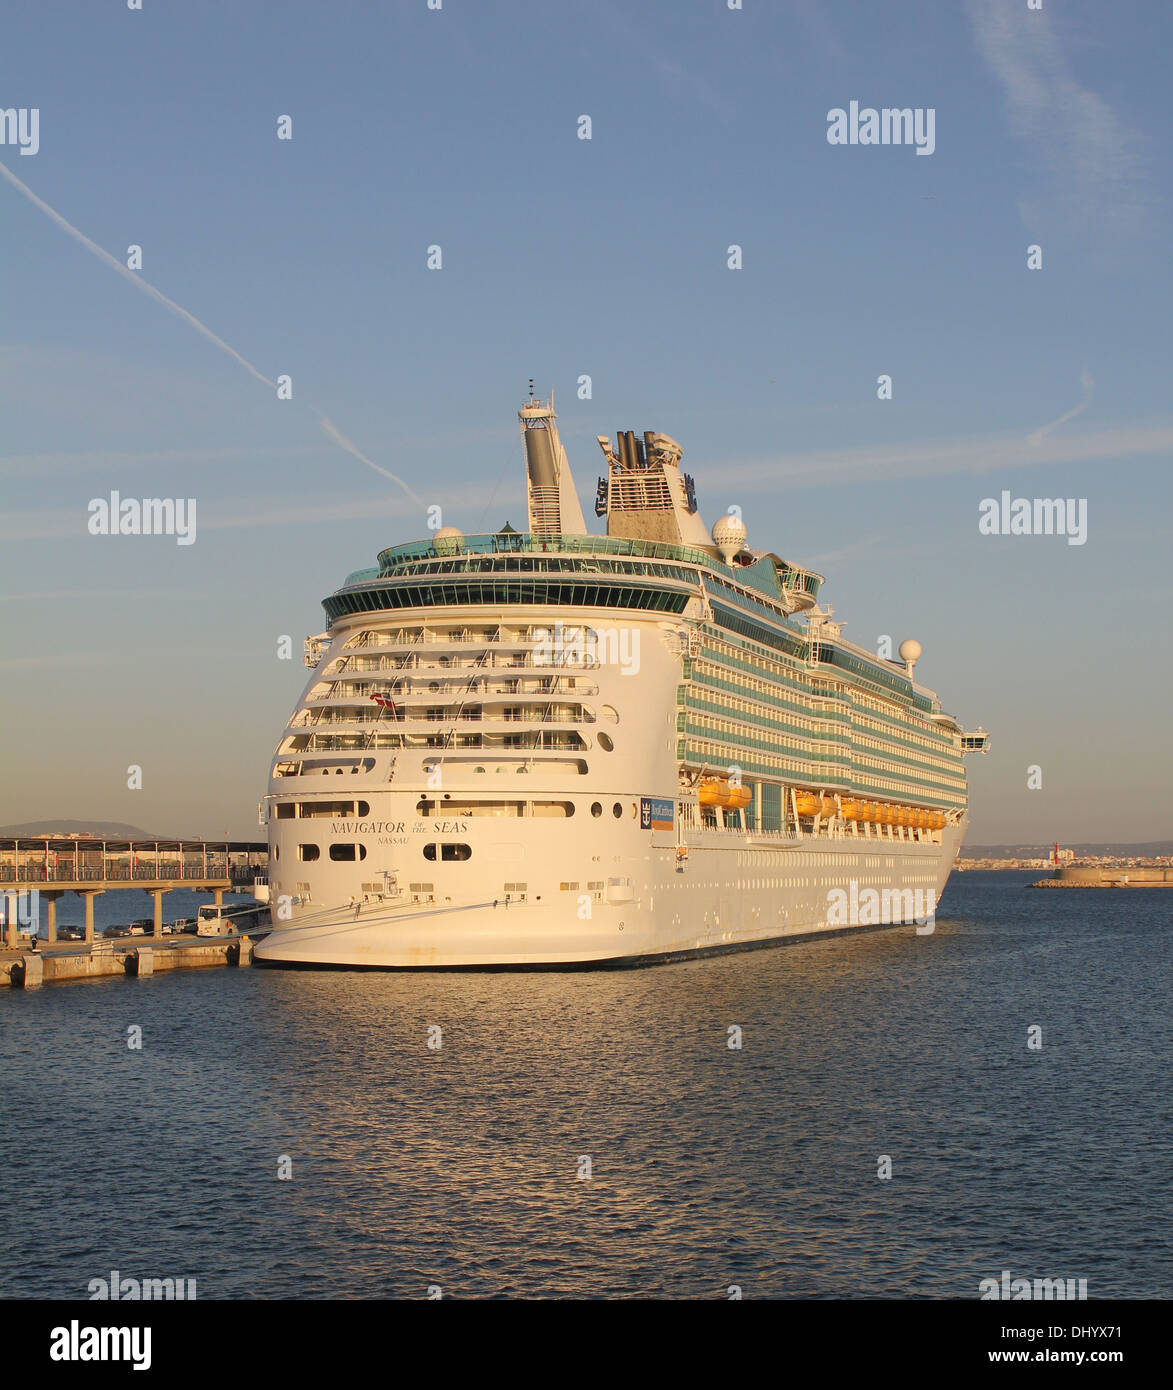 "Royal Caribbean International Cruise Line Cruise Ship ""Navigator of the Seas"" ( 311 mts) Port of Palma de Mallorca. - Stock Image"